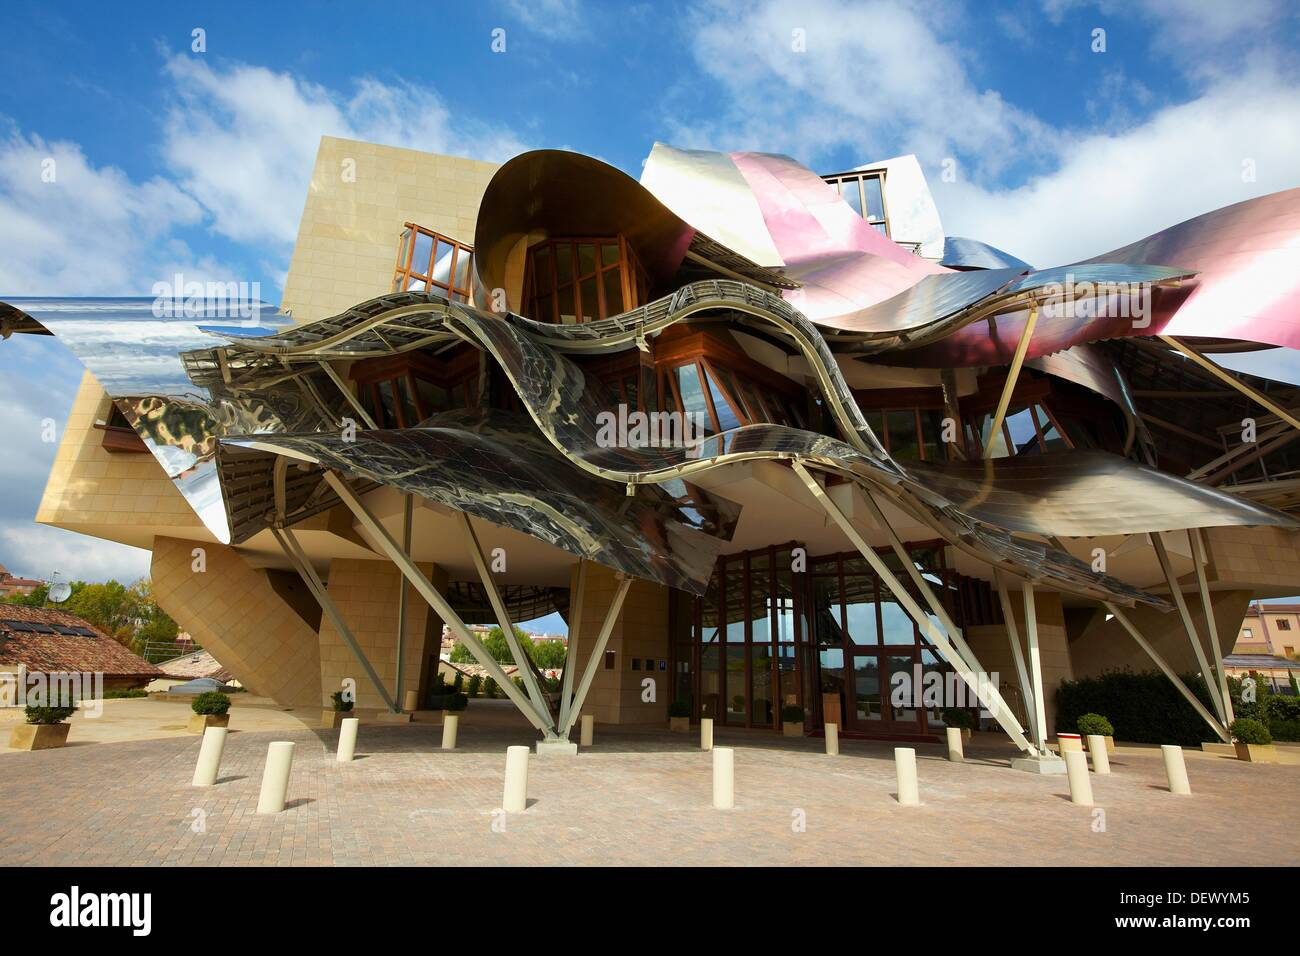 Hotel designed by frank gehry bodegas marques de riscal for Hotel marques riscal